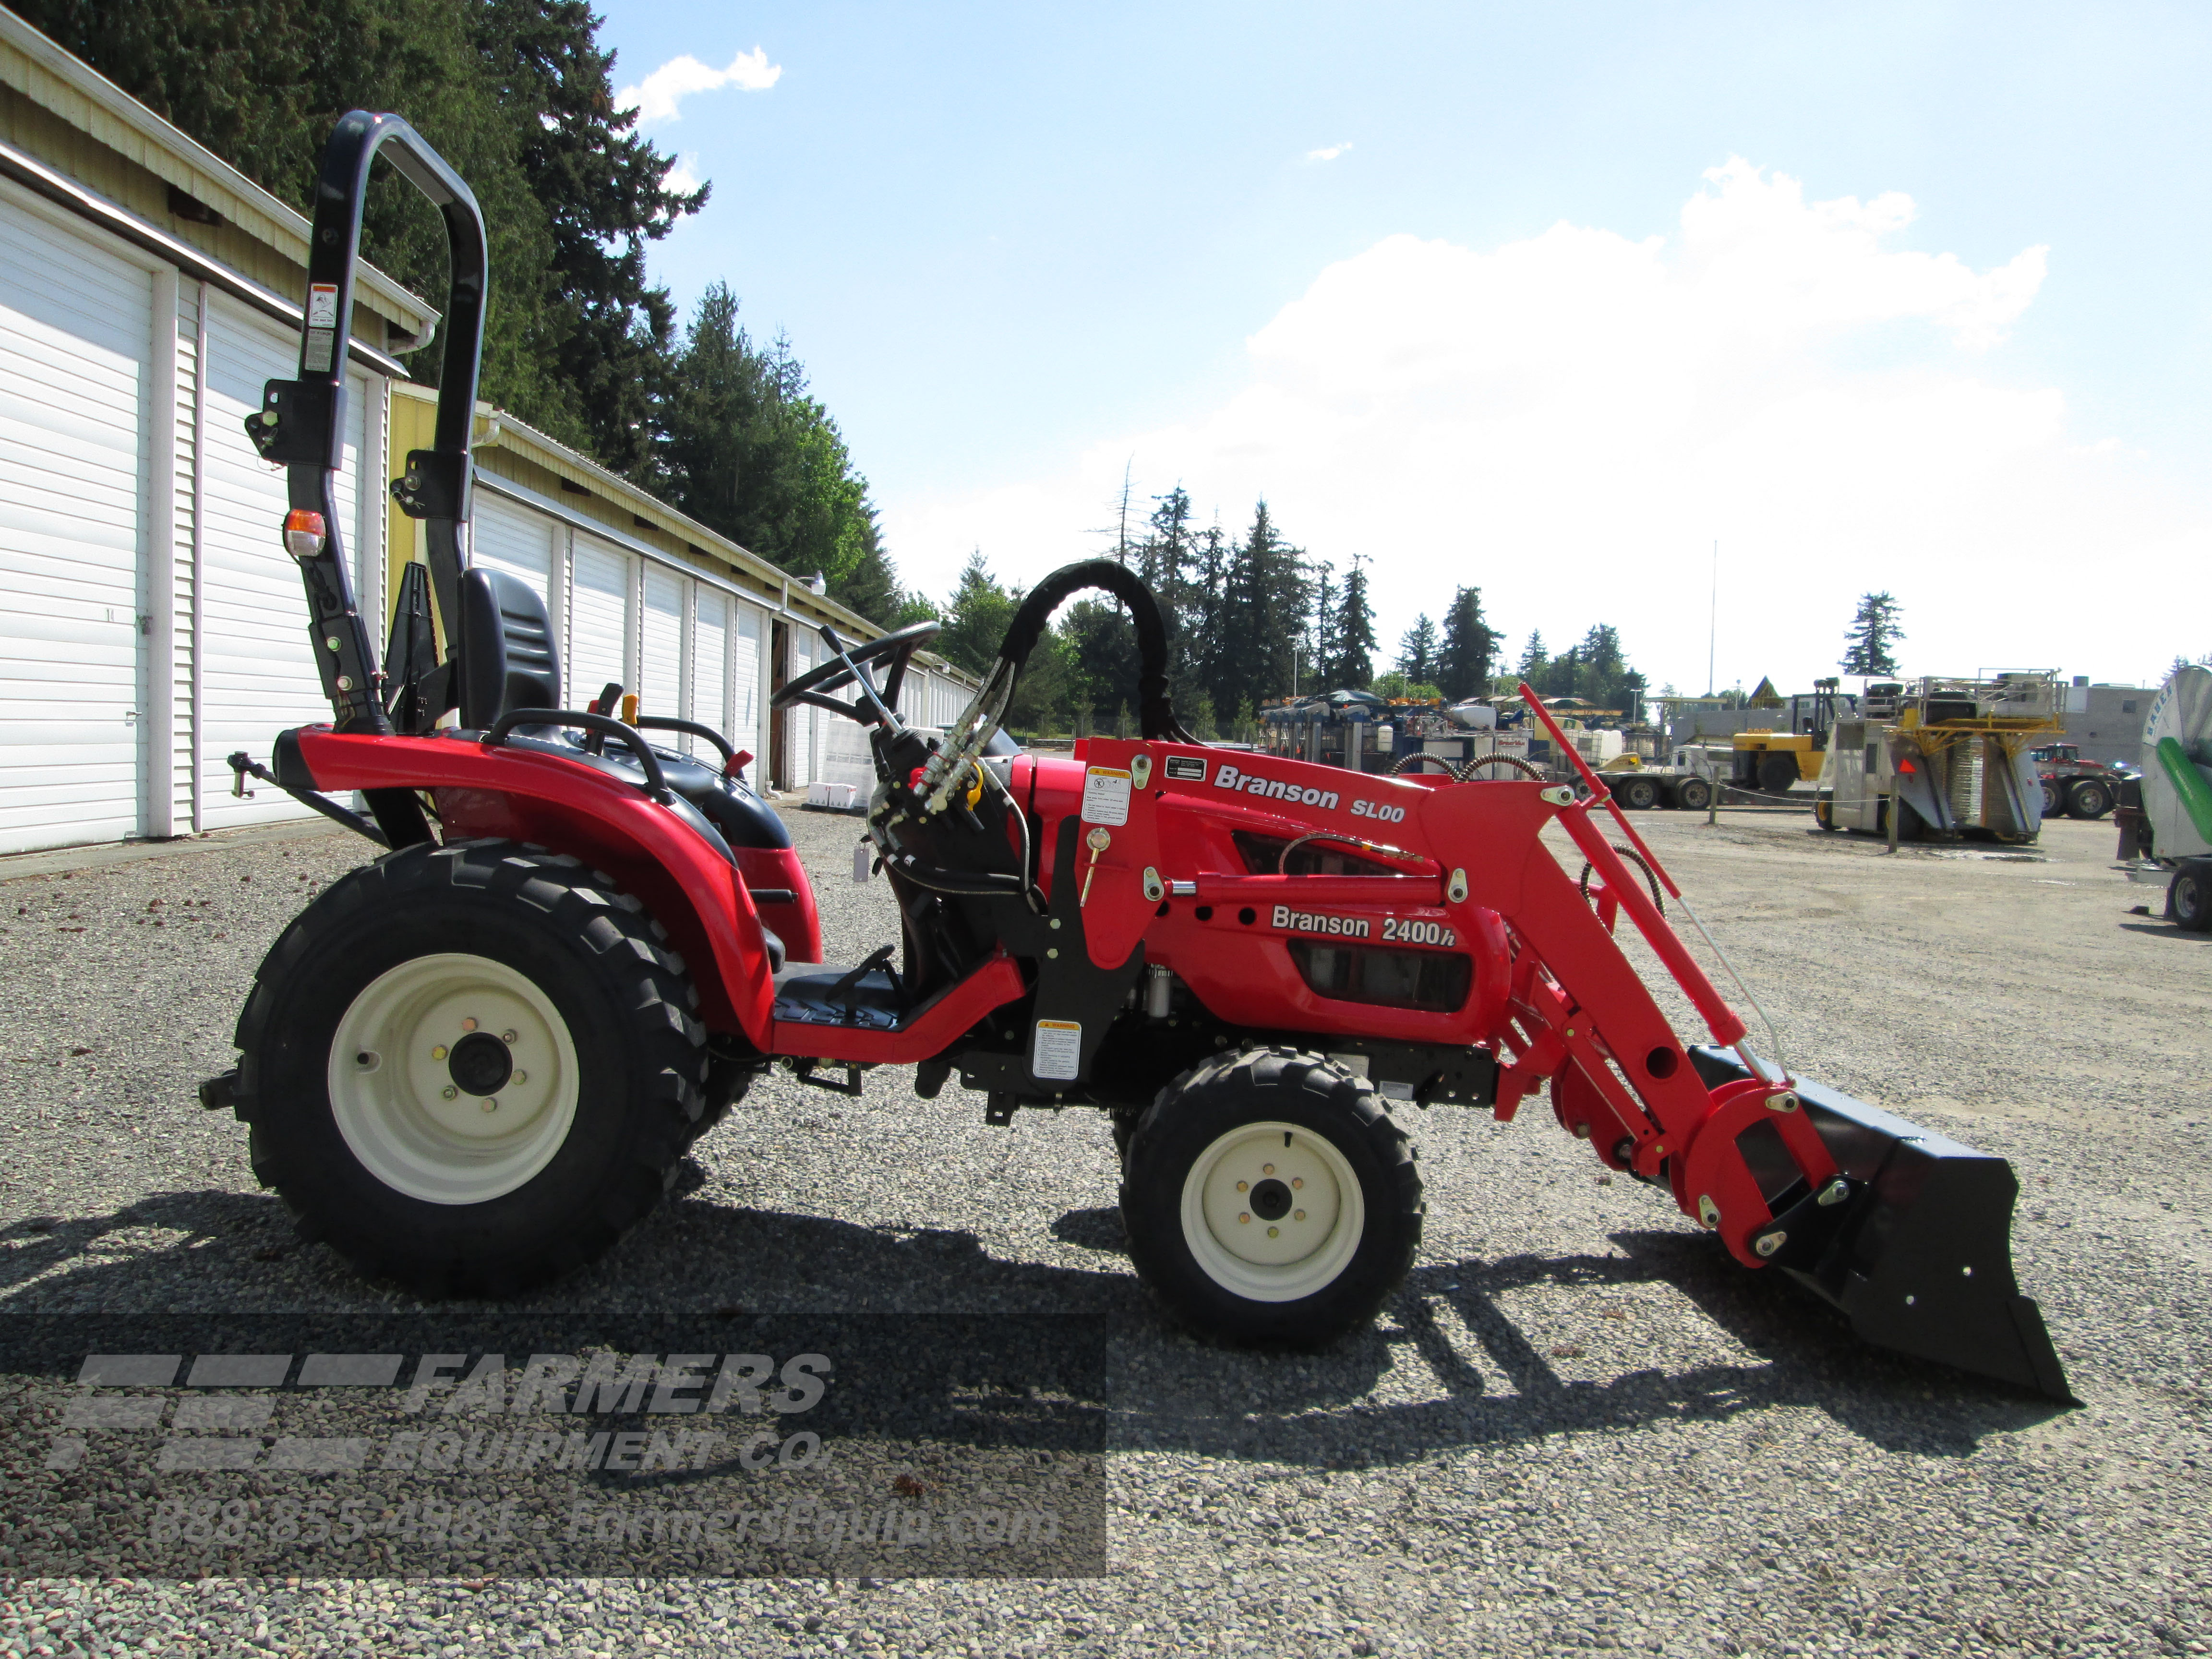 2014 Branson 2400H Tractor for sale in Lynden , WA | IronSearch